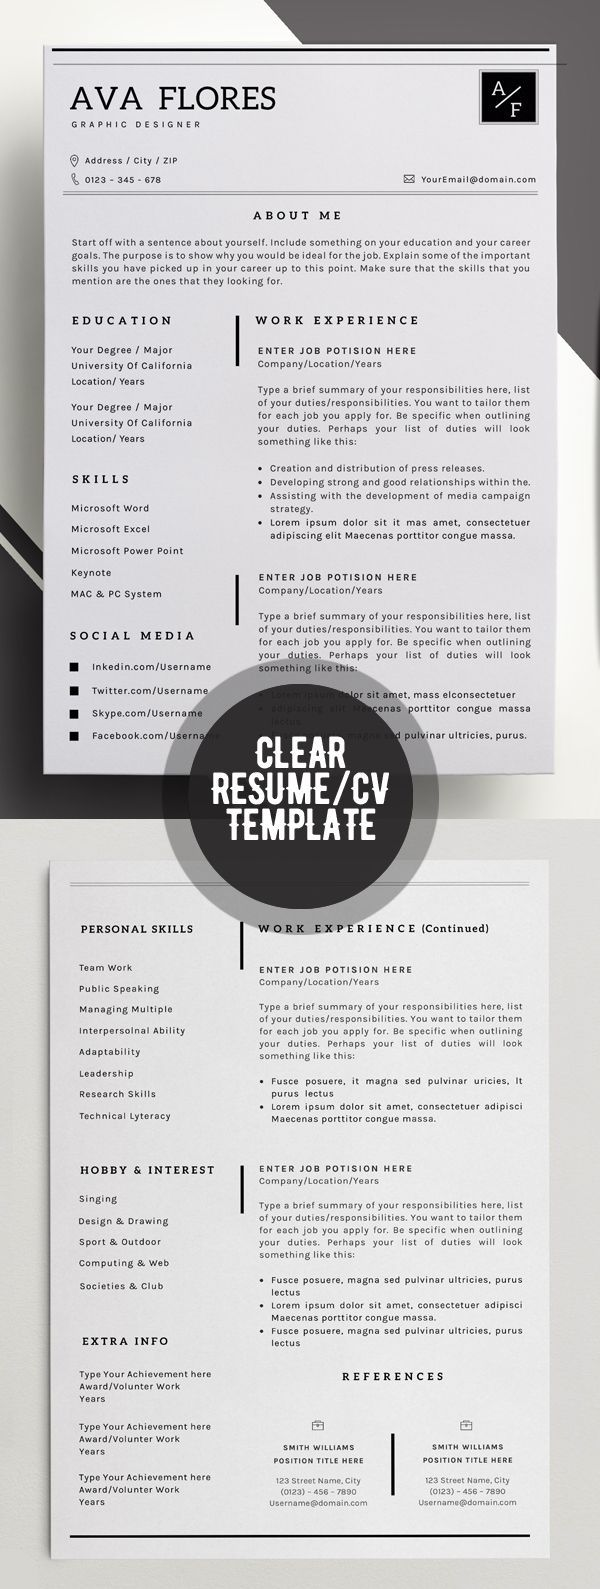 professional profile resume cv template cover letter design creative ...